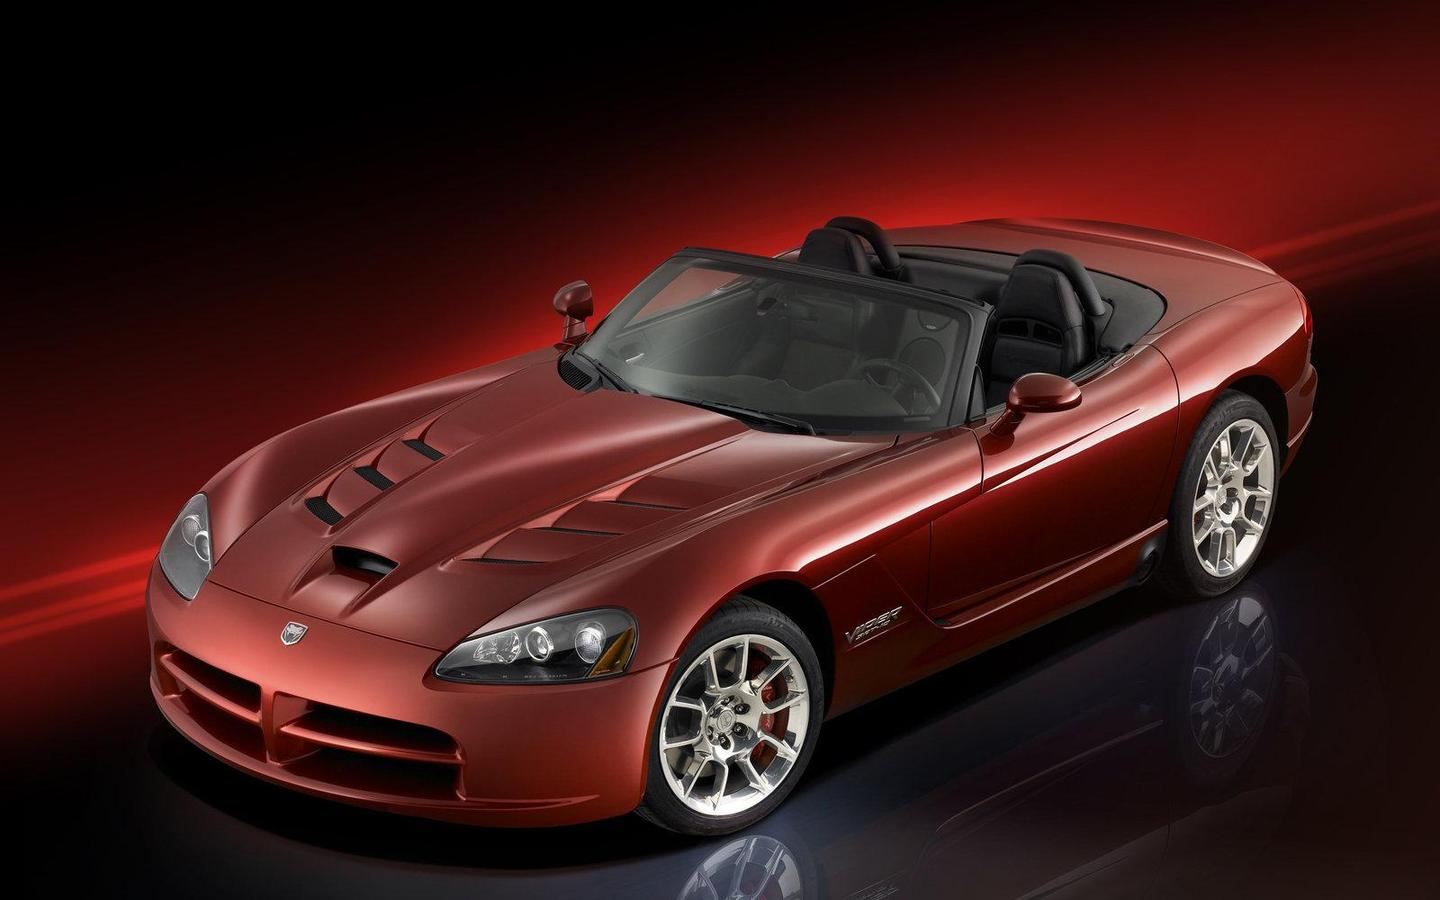 Dodge Viper Srt10 2008 1600×1200 Wallpaper 01